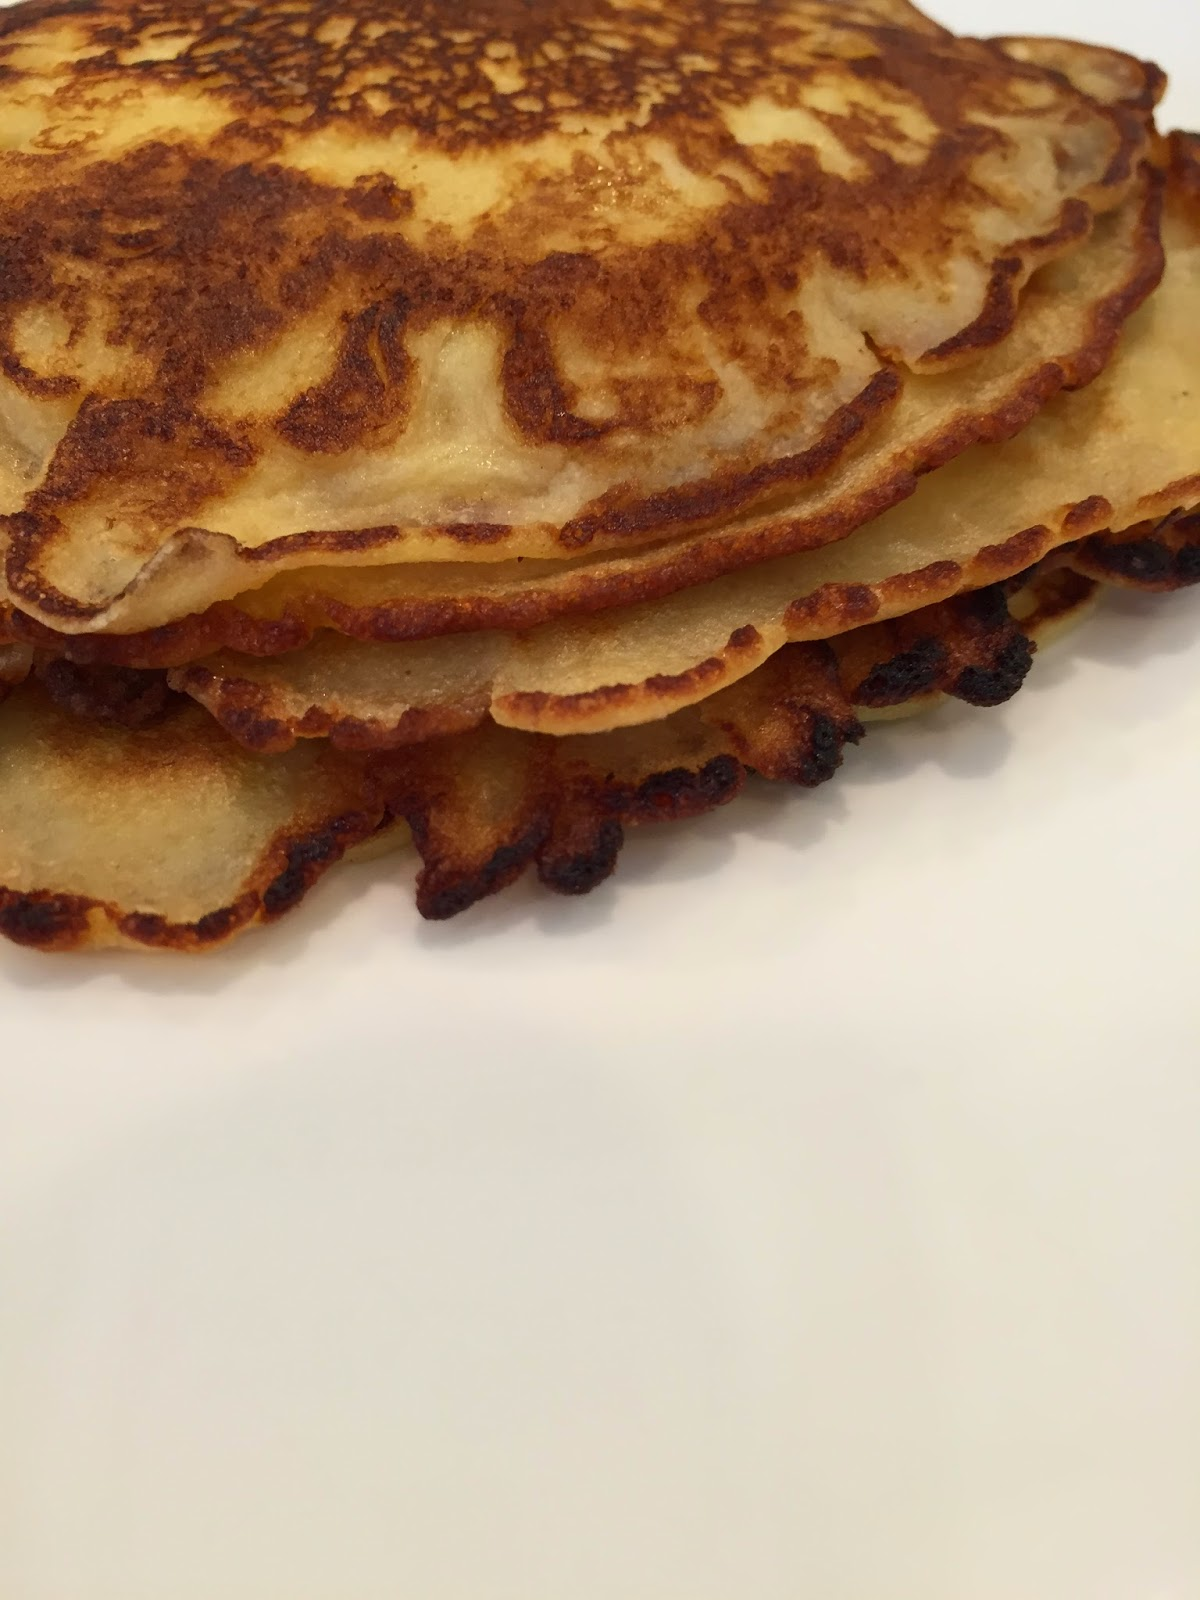 Everyday sisters perfect thin pancakes they are thin and buttery with crispy edges totally irresistible serve with warm maple syrup powdered sugar or plain straight out of the skillet ccuart Gallery